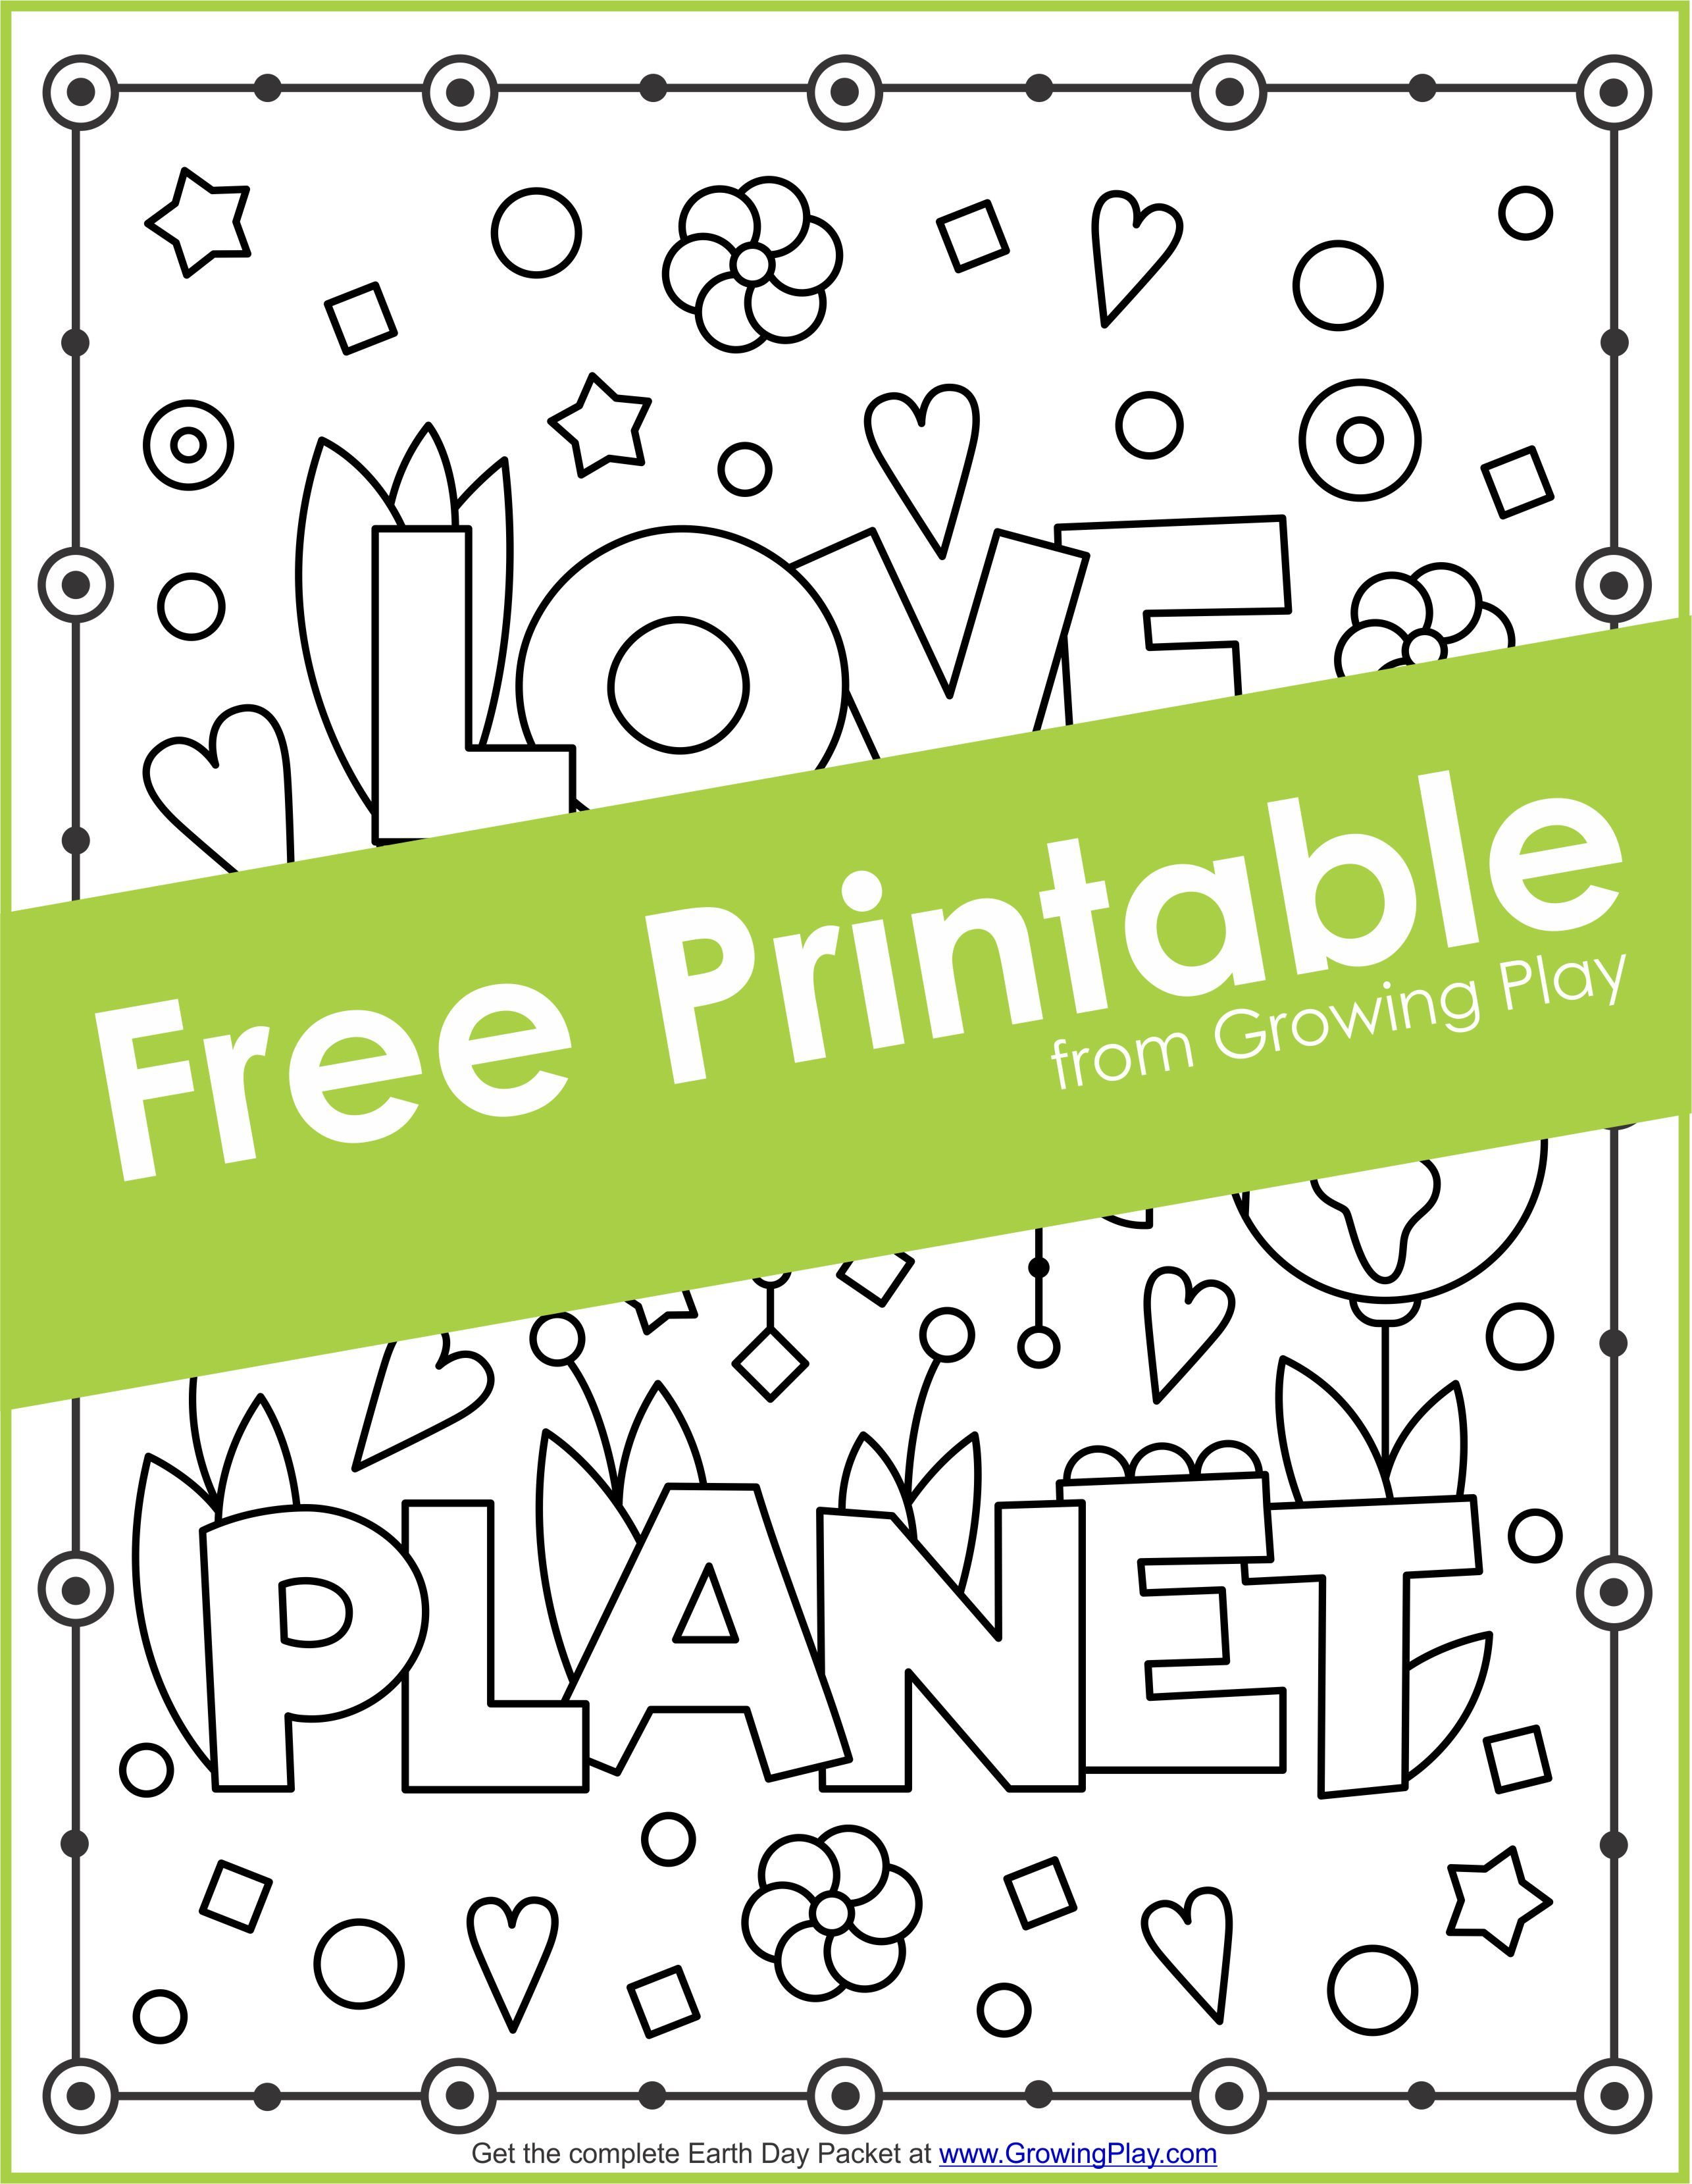 Earth Day Packet - Games, Coloring Pages and Puzzles | Growing Play ...